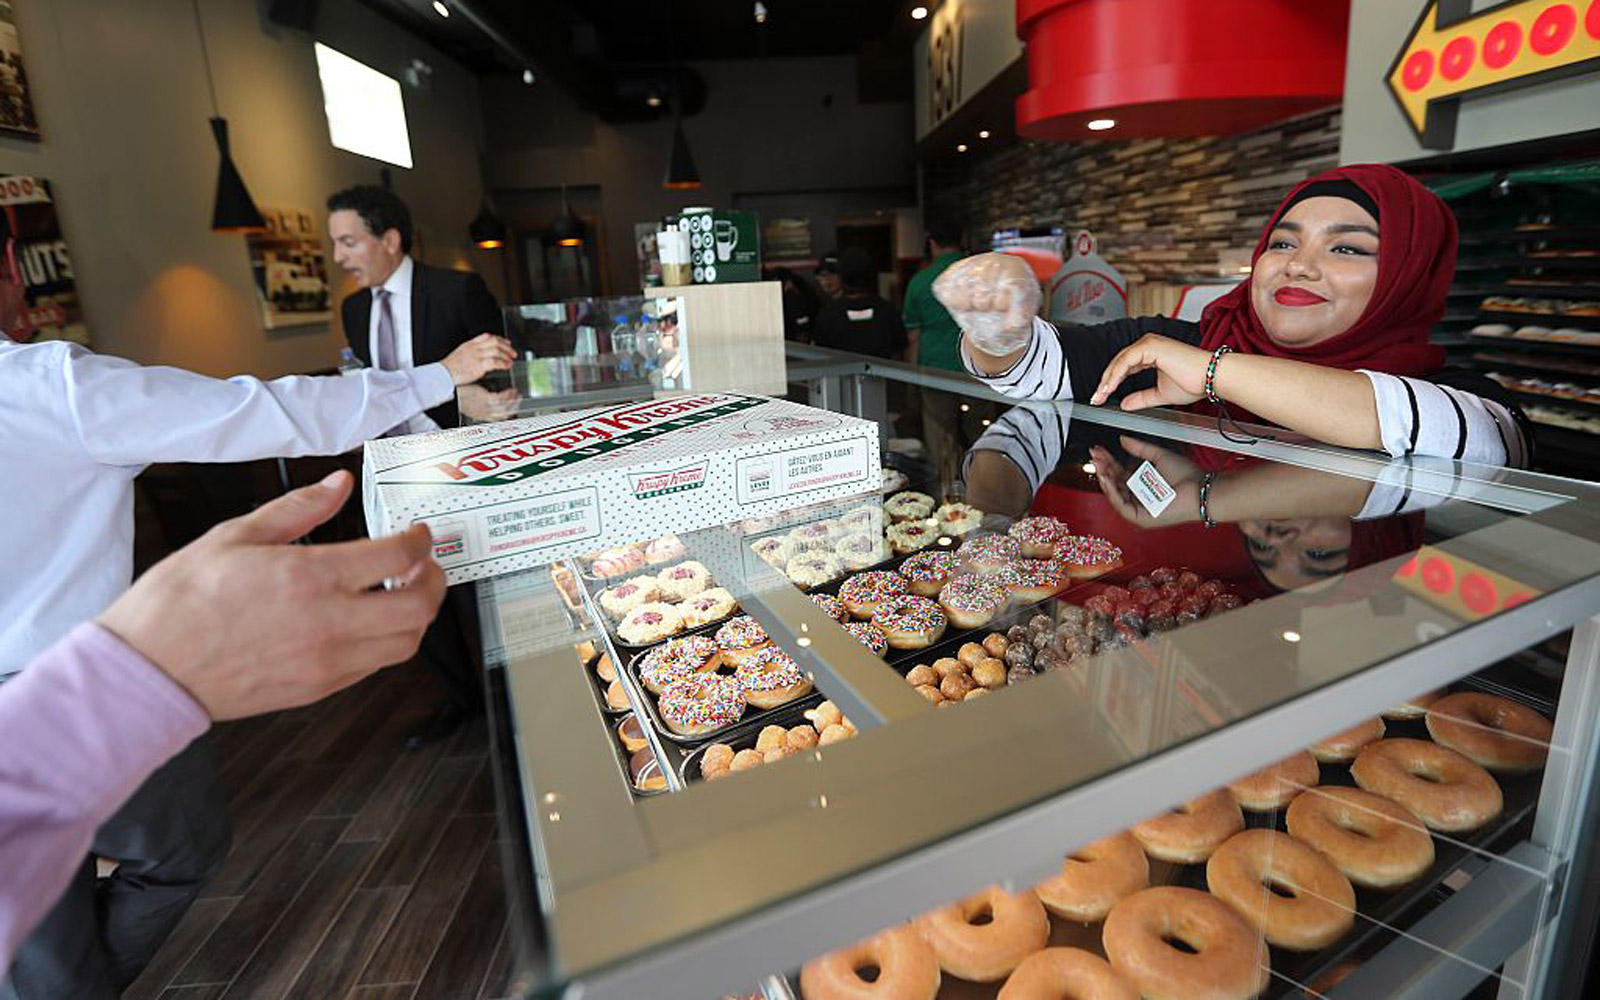 How to Get a Dozen Krispy Kreme Donuts for 80 Cents